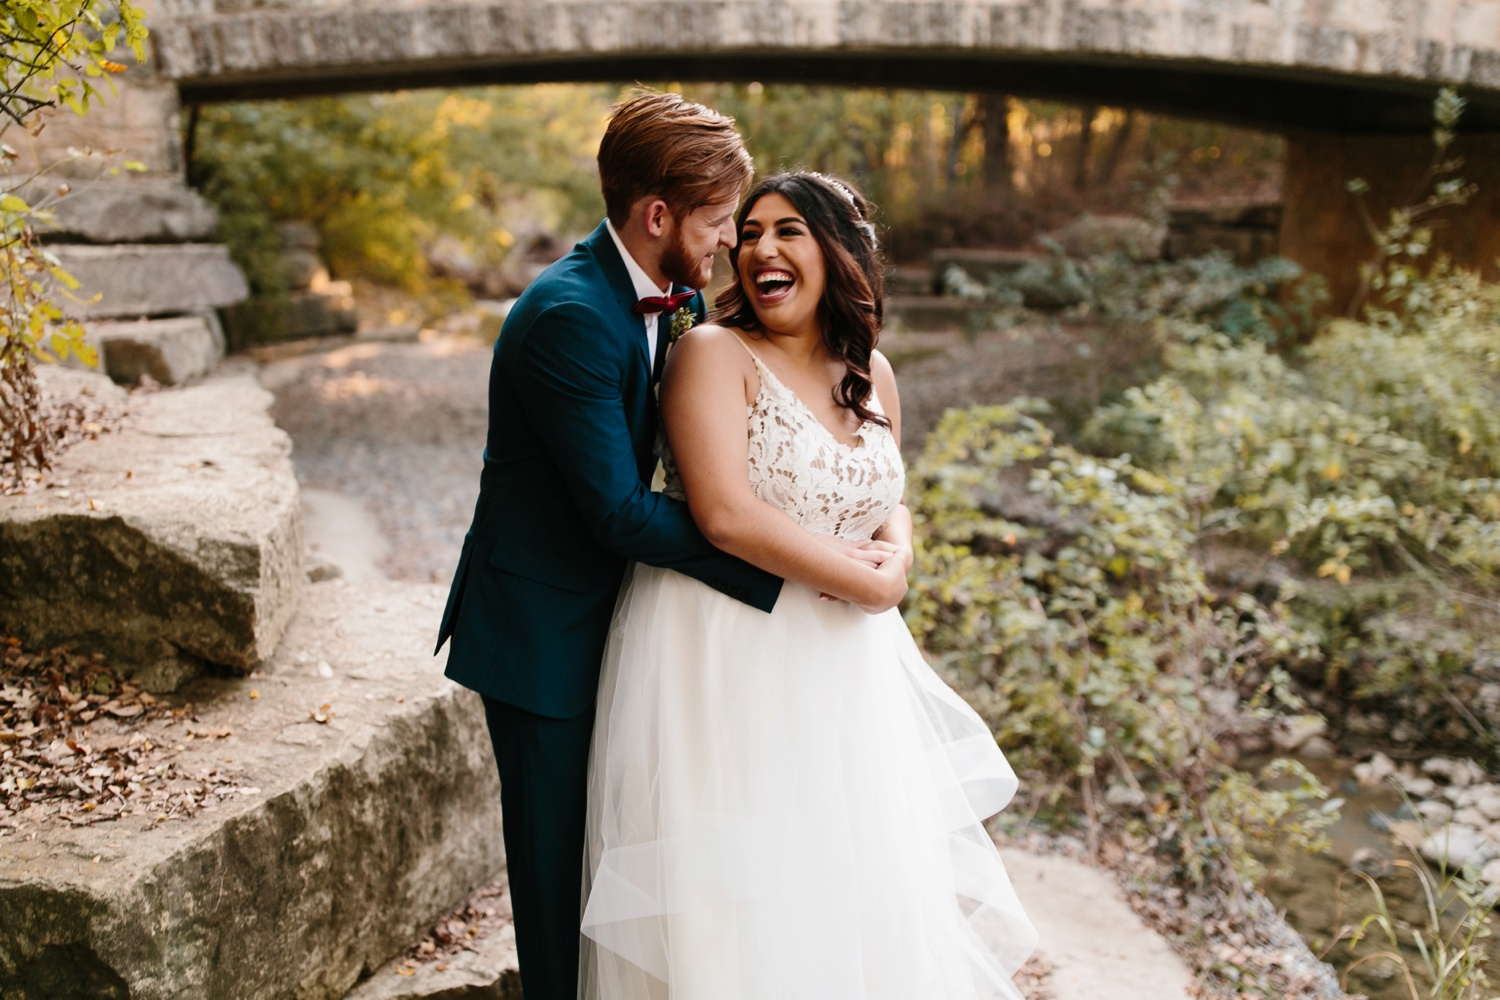 Grant + Lysette | a vibrant, deep burgundy and navy, and mixed metals wedding at Hidden Pines Chapel by North Texas Wedding Photographer Rachel Meagan Photography 214